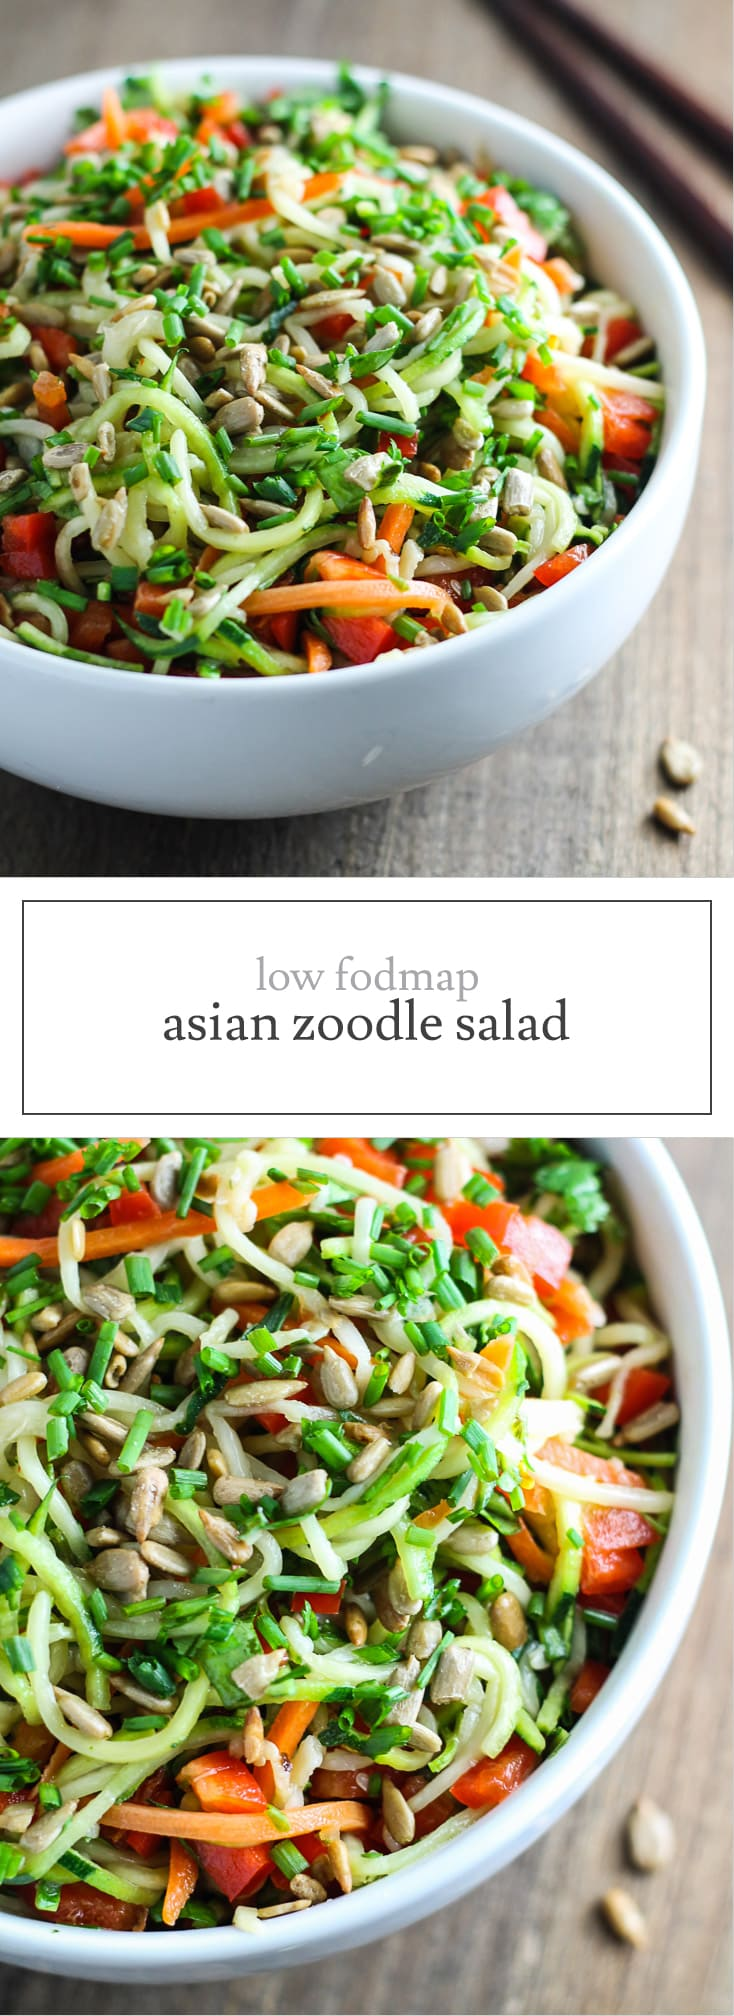 Fresh and colorful, this 10-minute Low FODMAP Asian Zoodle Salad is DE-lish! Make this fast and flavorful salad recipe for a light lunch or serve with shrimp for a quick supper.